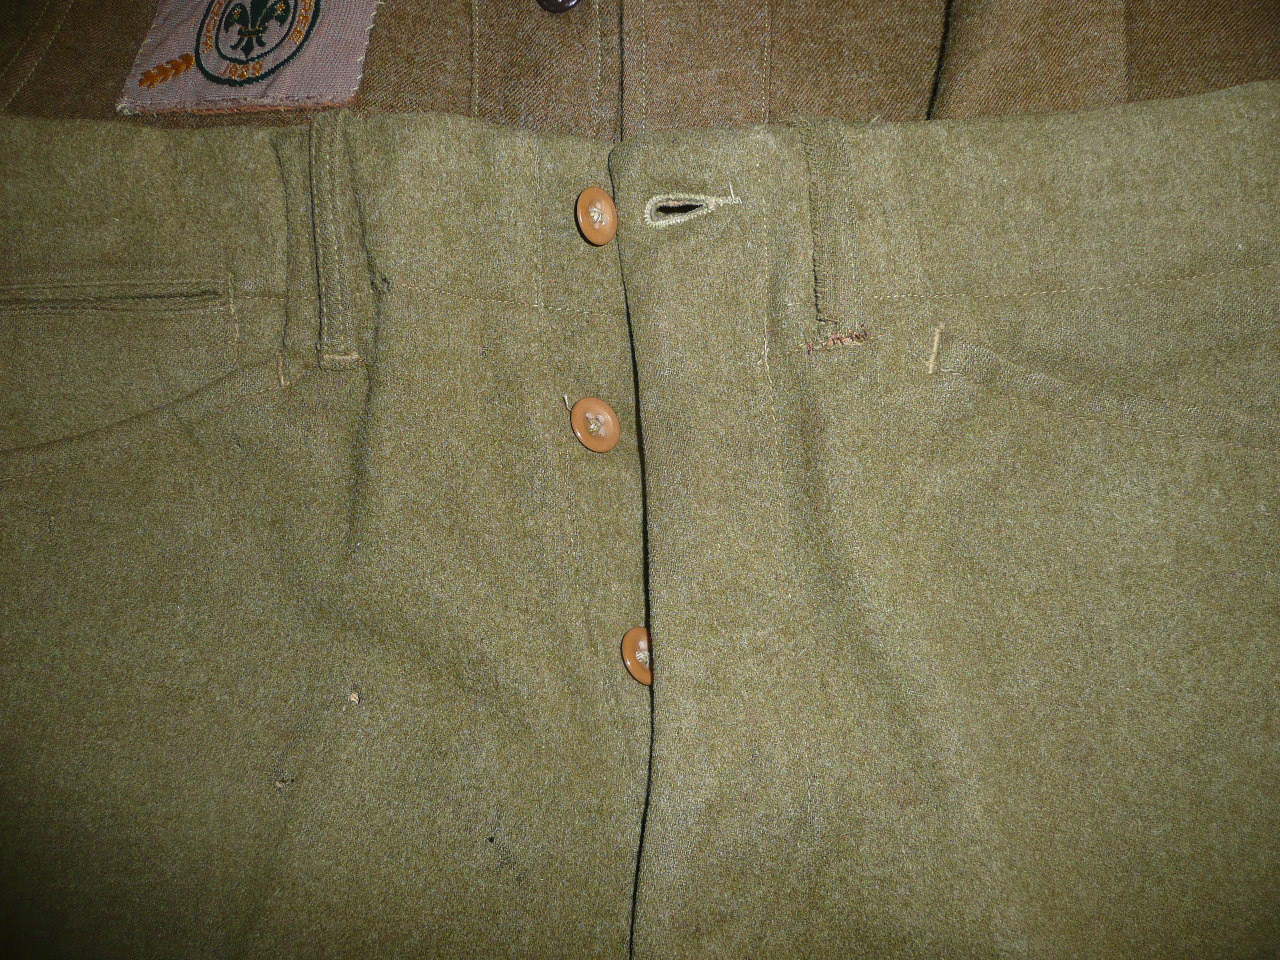 1929 World Jamboree, Special BSA Wool Uniform only used by the BSA for the 1929 WJ, with all insignia, VERY RARE